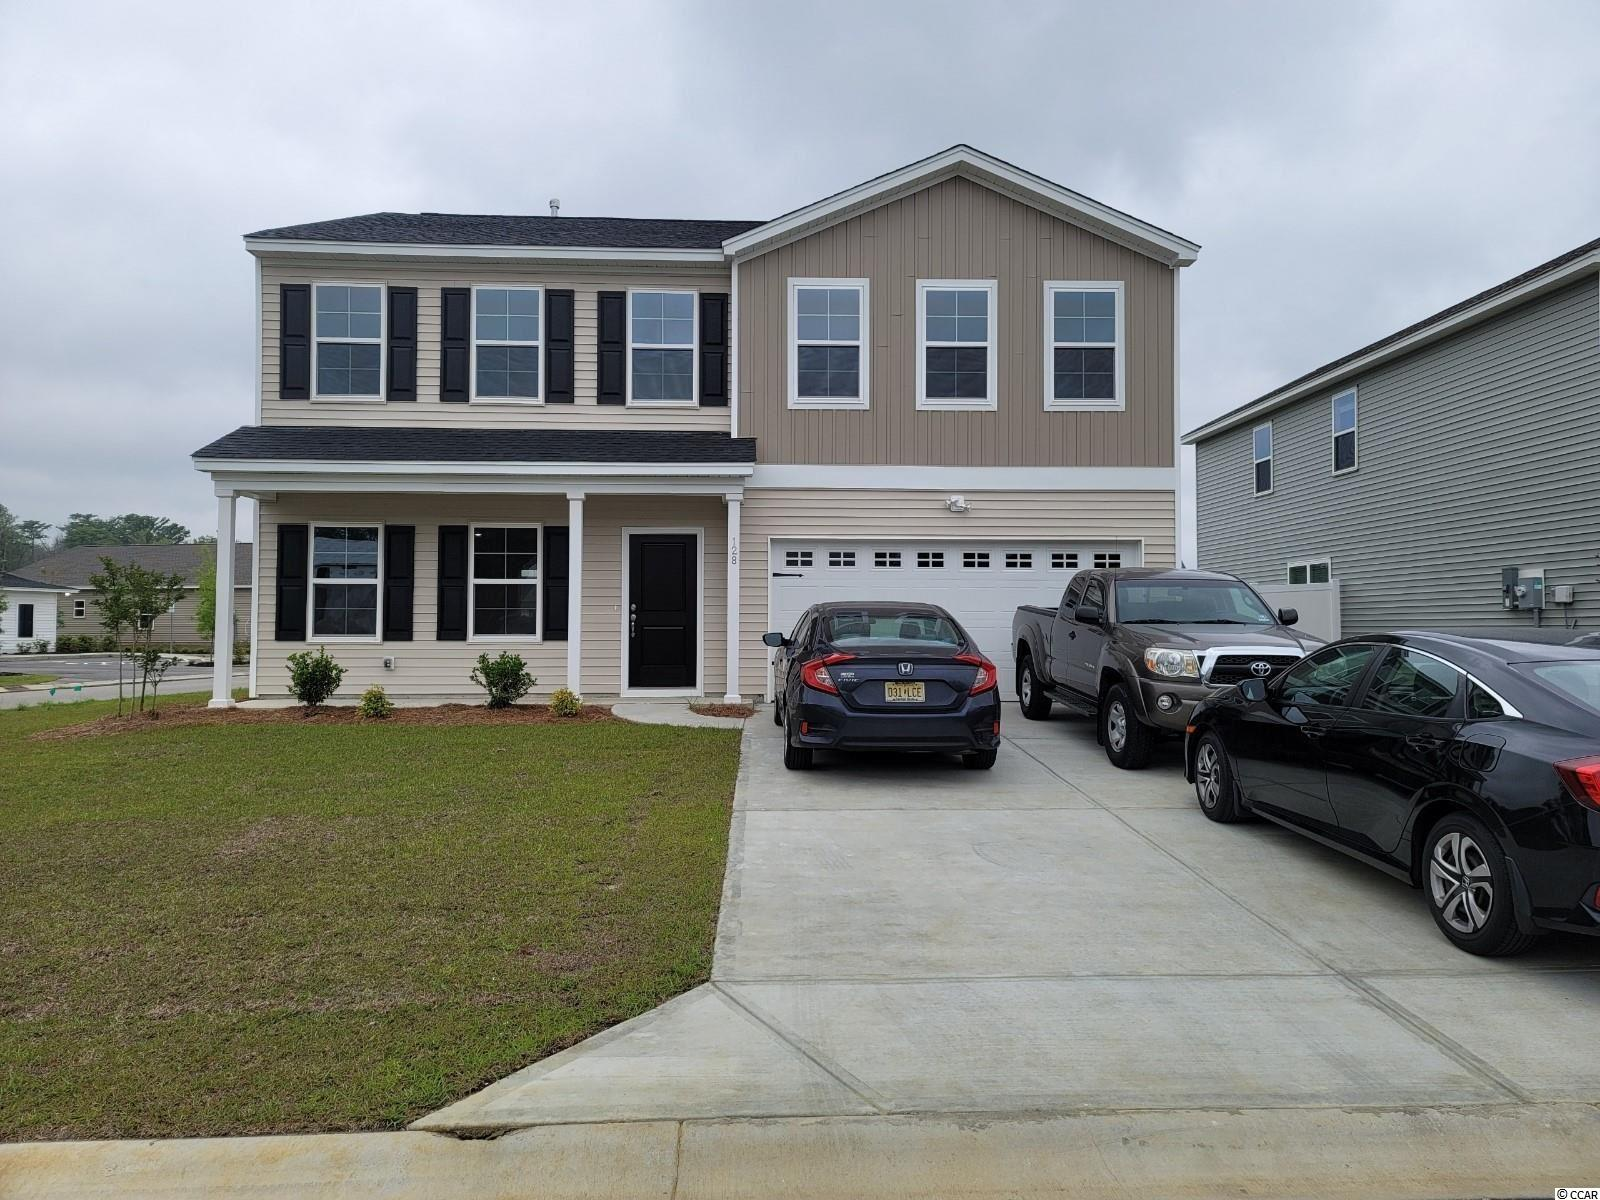 New Community with Pool!! Sugarloaf Now Selling Phase 1!! This McDowell plan is under construction, to be completed in March 2021. With 2,237 Htd SF, this 2-story home has 5 bedrooms, 3 baths, plus a loft! Plenty of space for everyone! Tankless Gas Hot Water, Gas Heat, and Gas Range/Oven, Stainless Steel appliances, Granite in Kitchen, Wood-look plank waterproof flooring, crown molding, Covered patio with fan, and more! Photo shows a similar McDowell plan. All measurements are considered accurate but not guaranteed, buyer to verify. Your buyers will have Peace of Mind with Mungo Homes Nationally Recognized Customer Service Care!